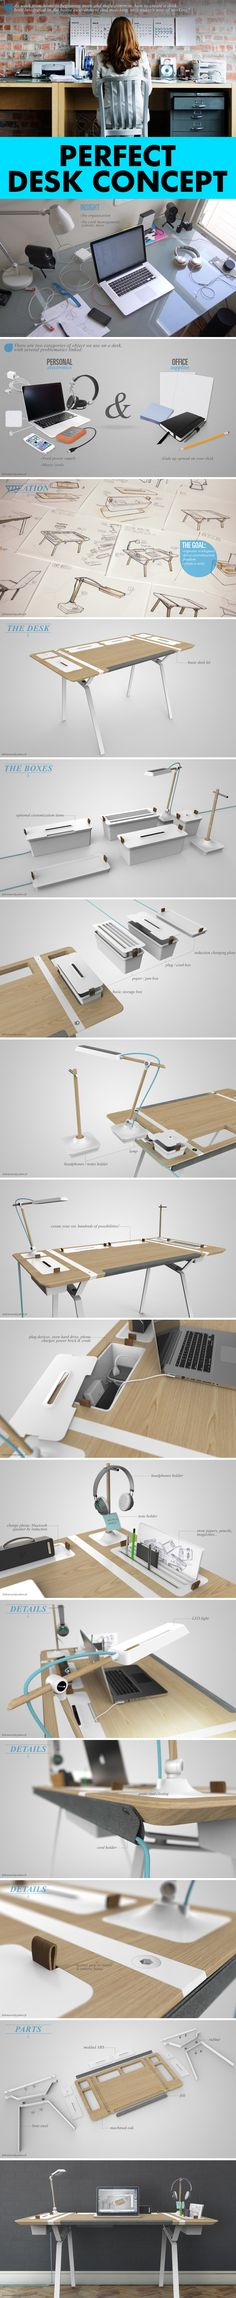 Very Cool Desk concept by Francois Dransart, via Behance *** #desk #behance #desk #design #deskdesign #working #table #unique #wood